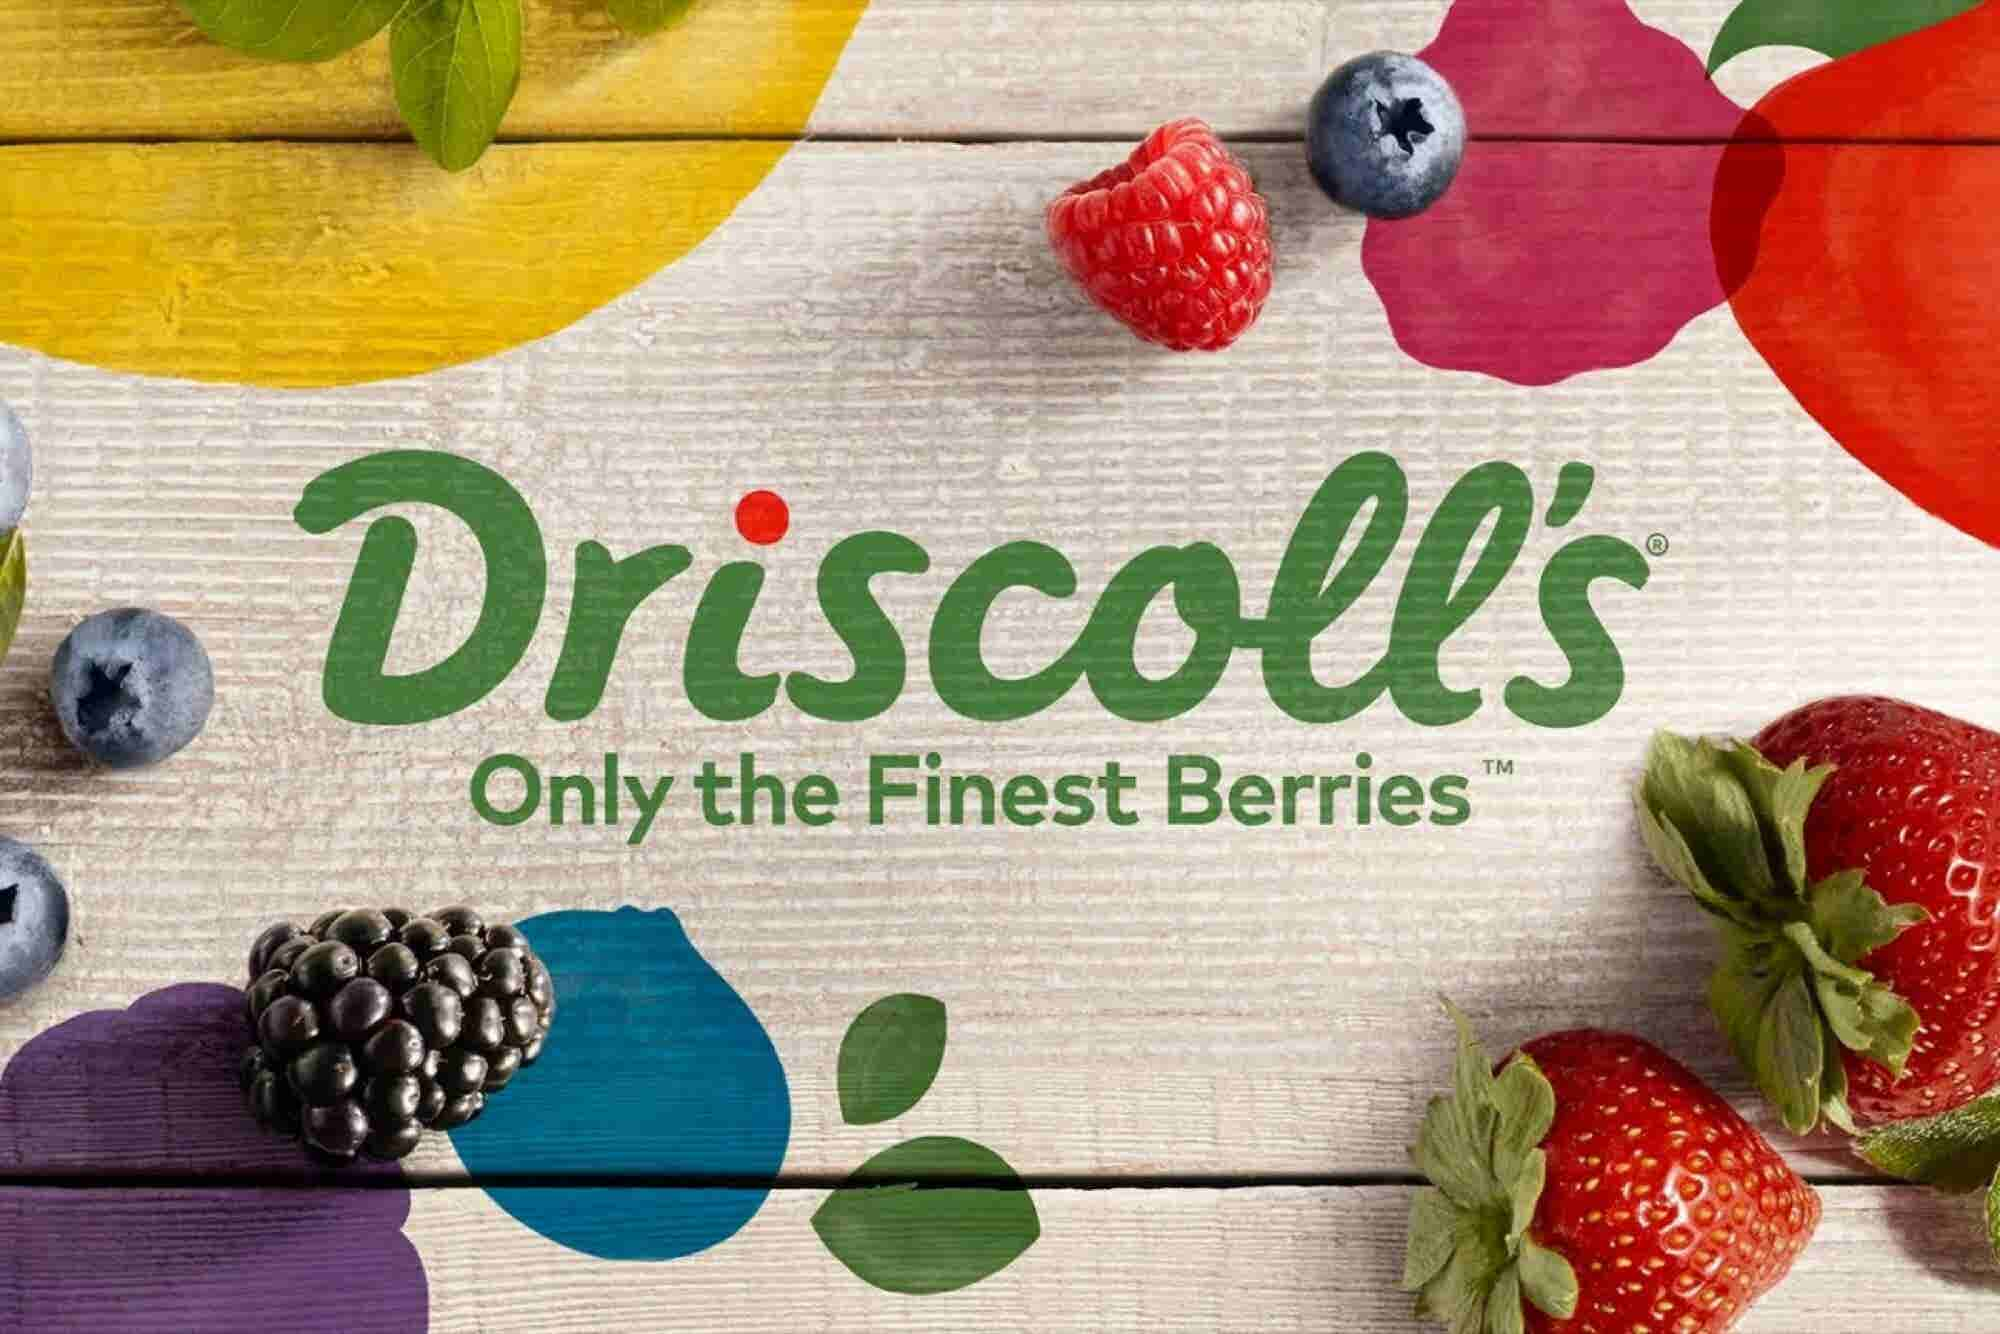 This Once-Per-Century Rebranding Is a Case Study In Marketing Done Right